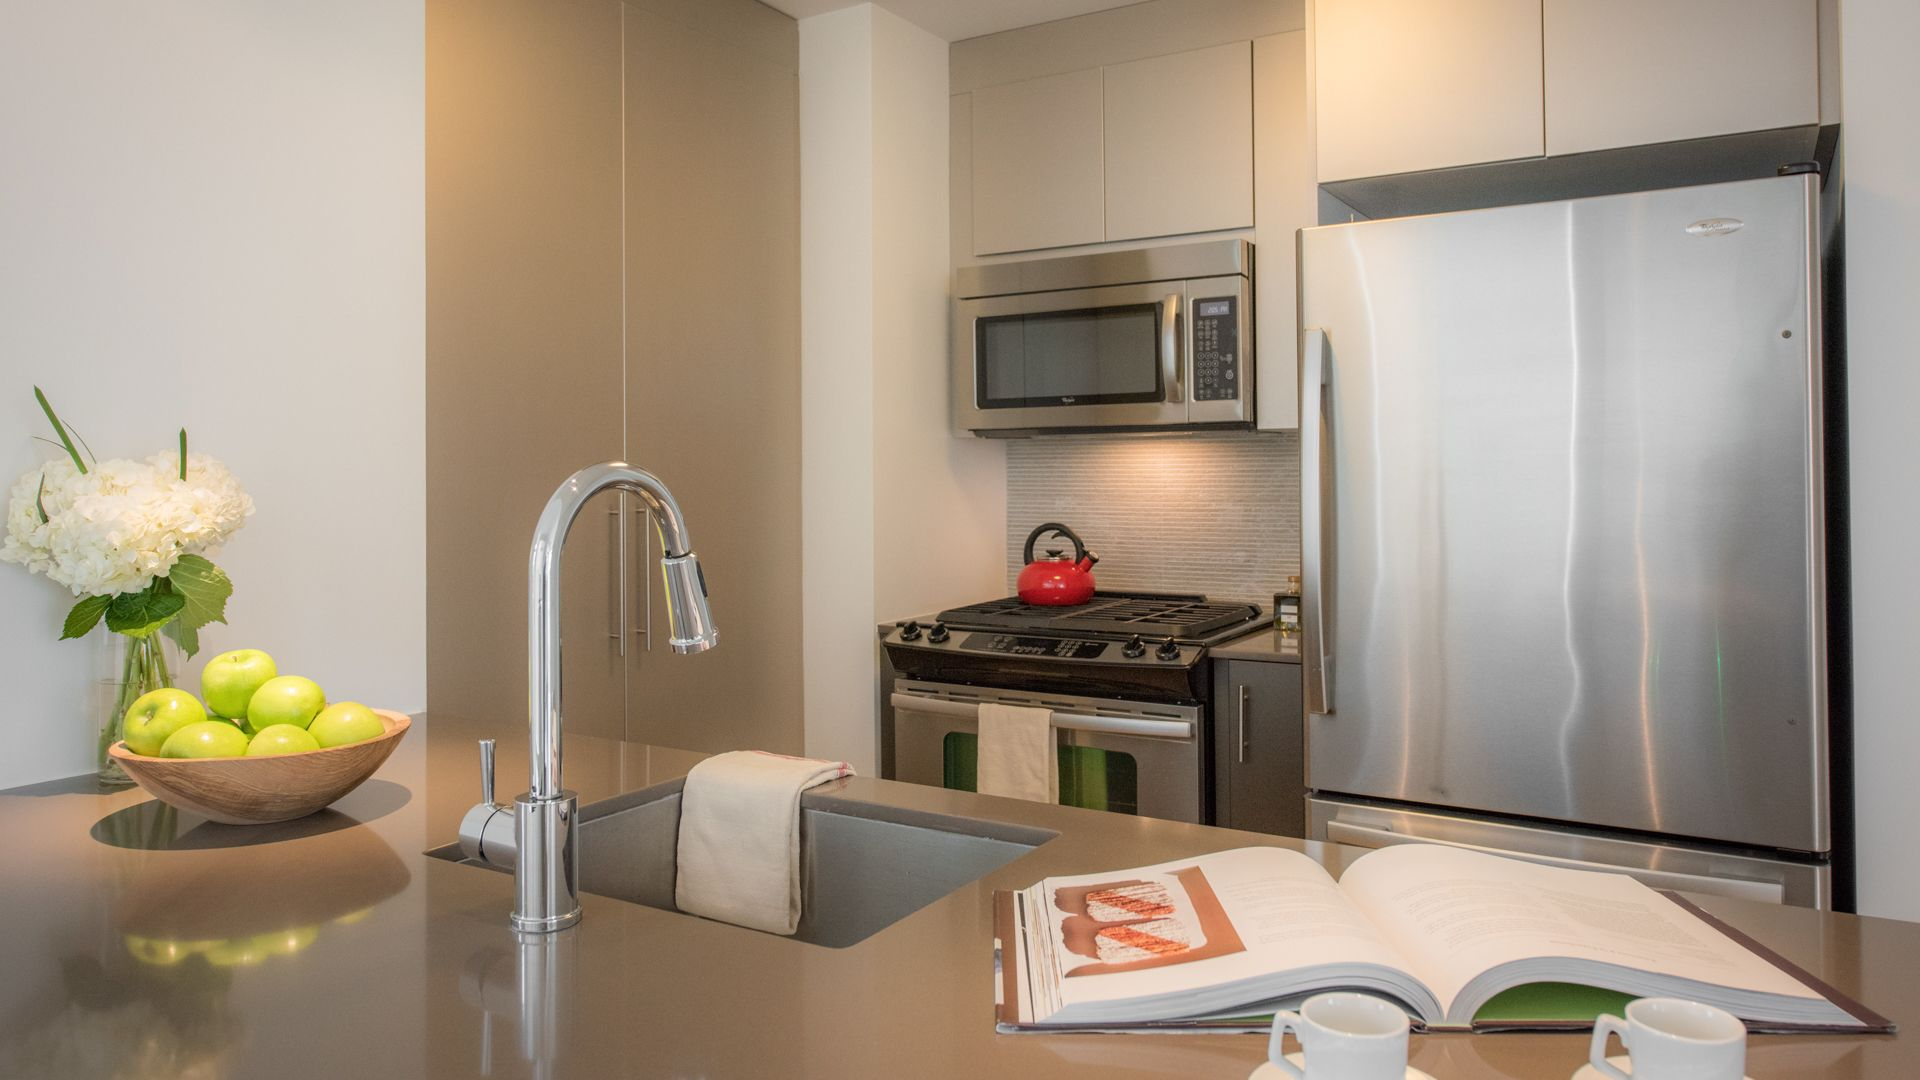 Ten23 Apartments - Kitchen